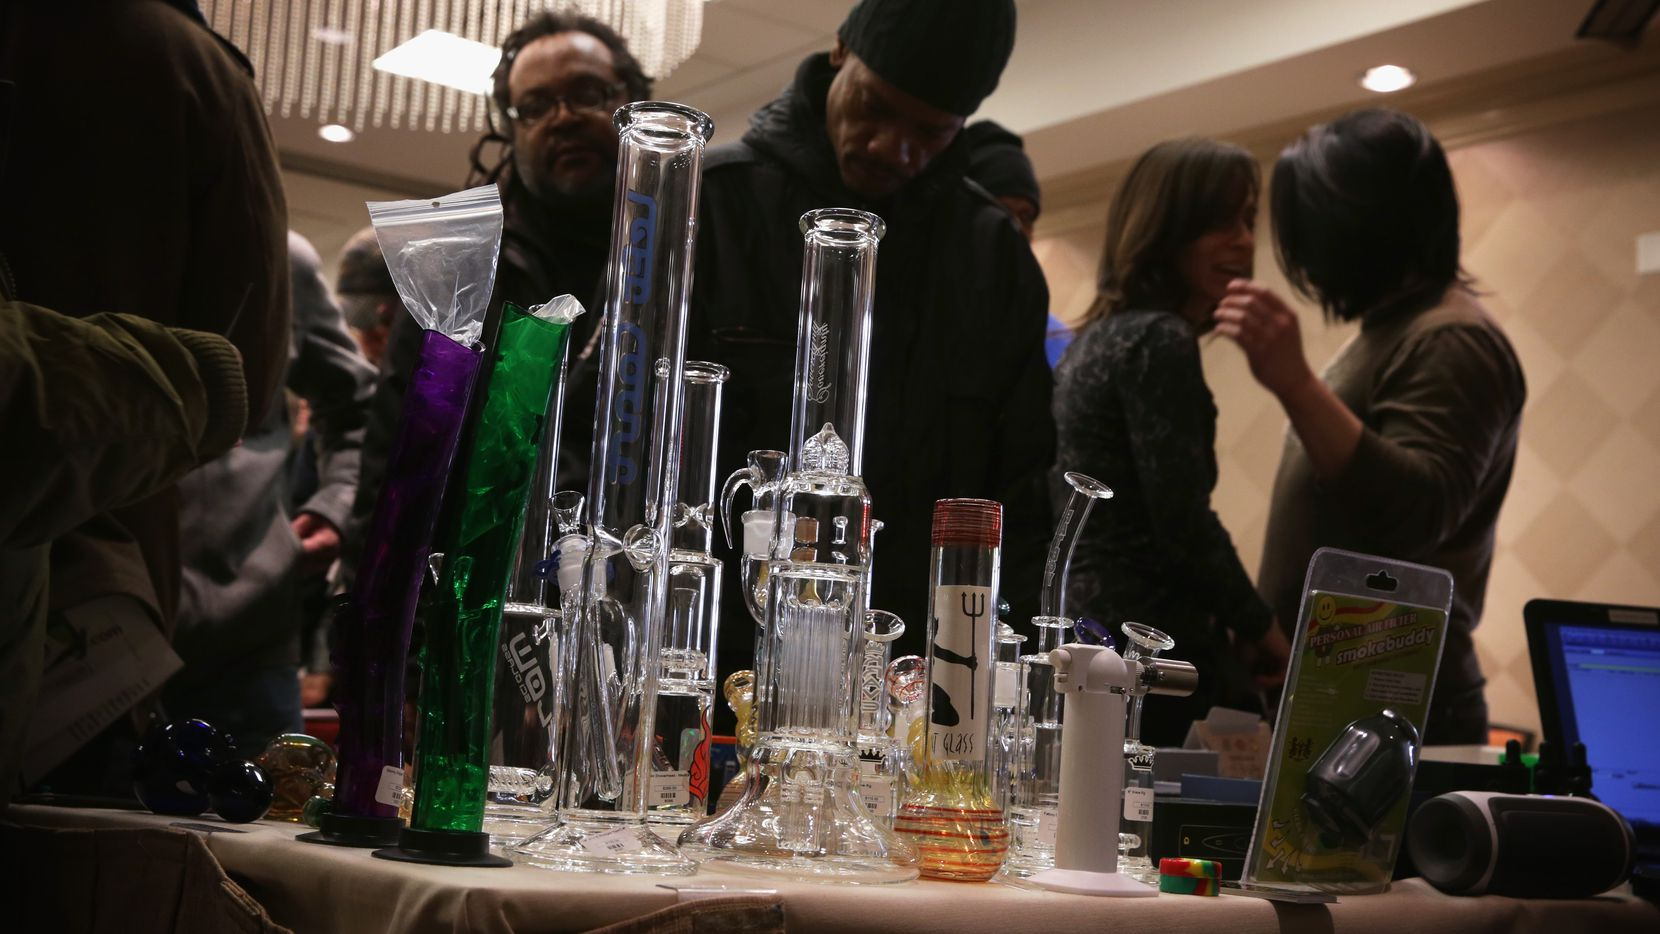 Attendees check out smoking pipes during a ComfyTree Cannabis Academy conference February 28, 2015 in Washington, DC. City council members in Mesquite recently approved stronger regulations on the sale of smoking paraphernalia in city limits.